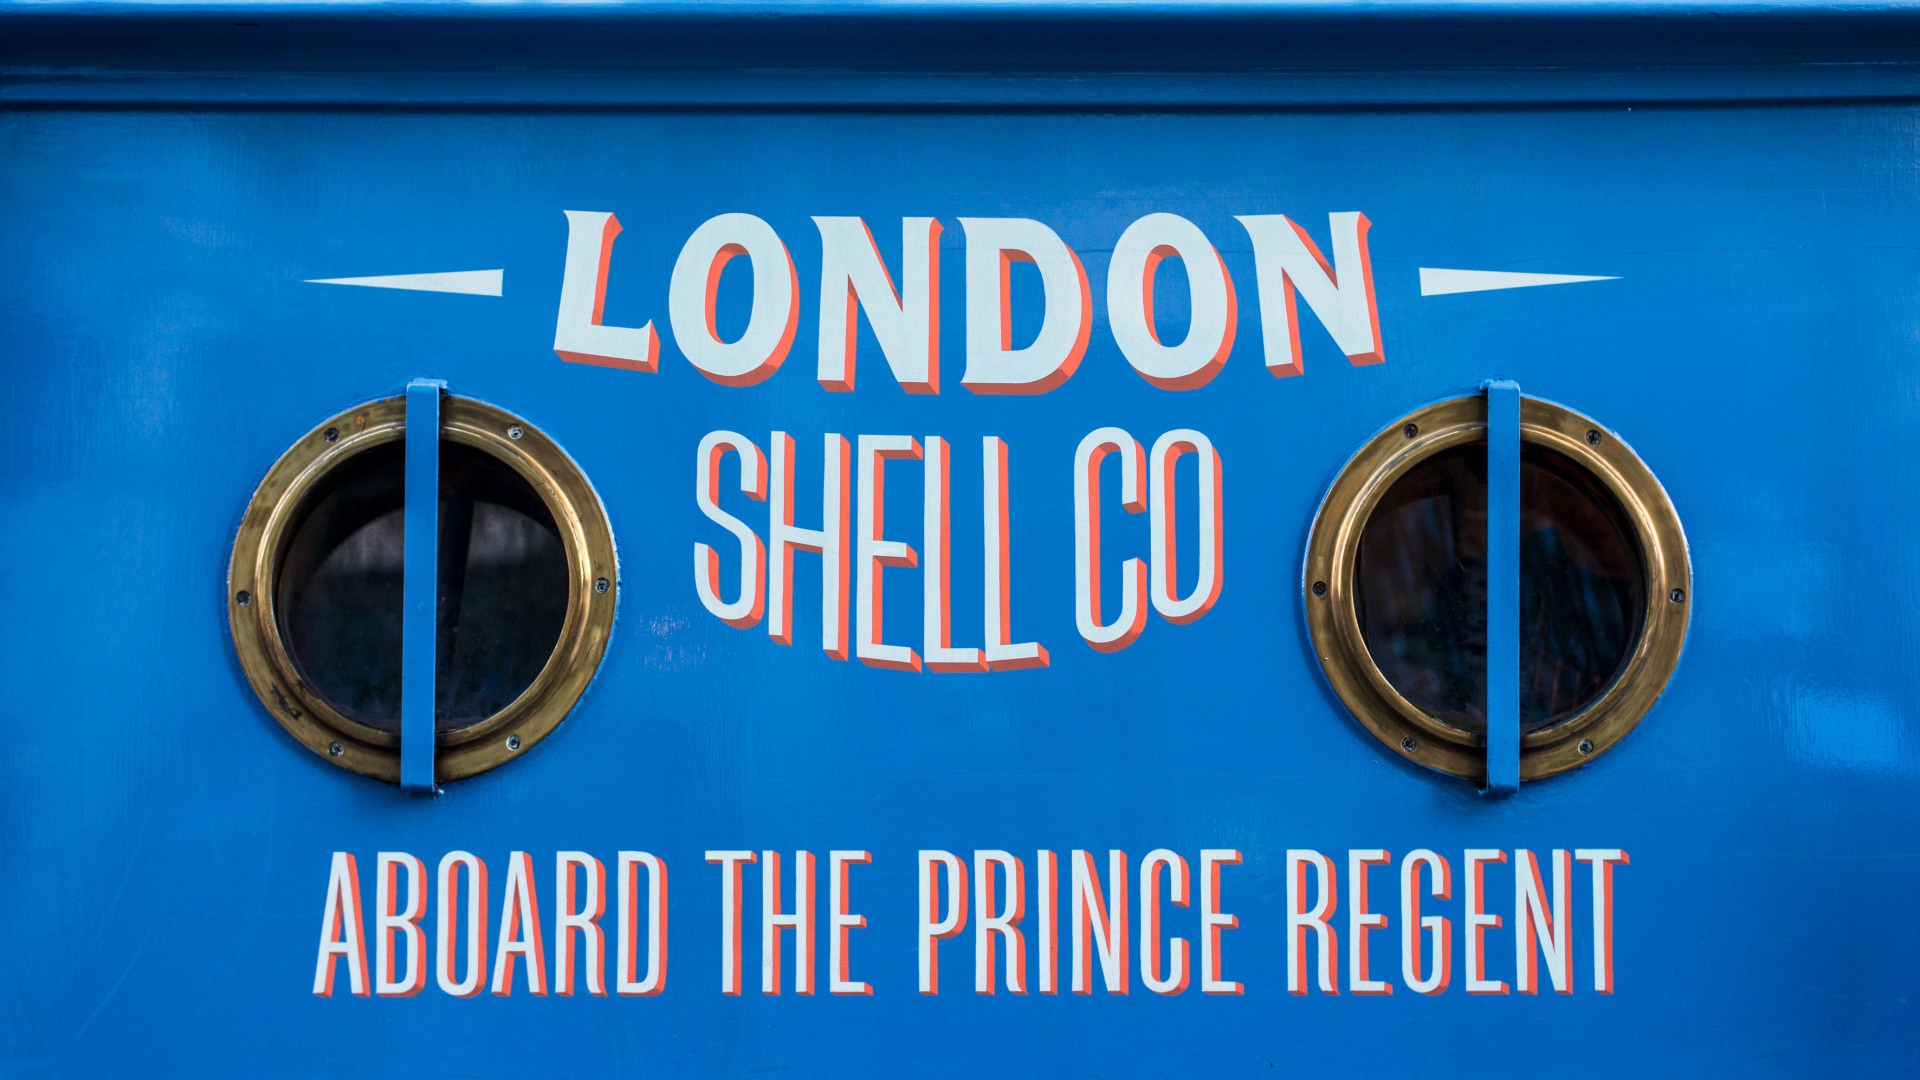 London Shell Co